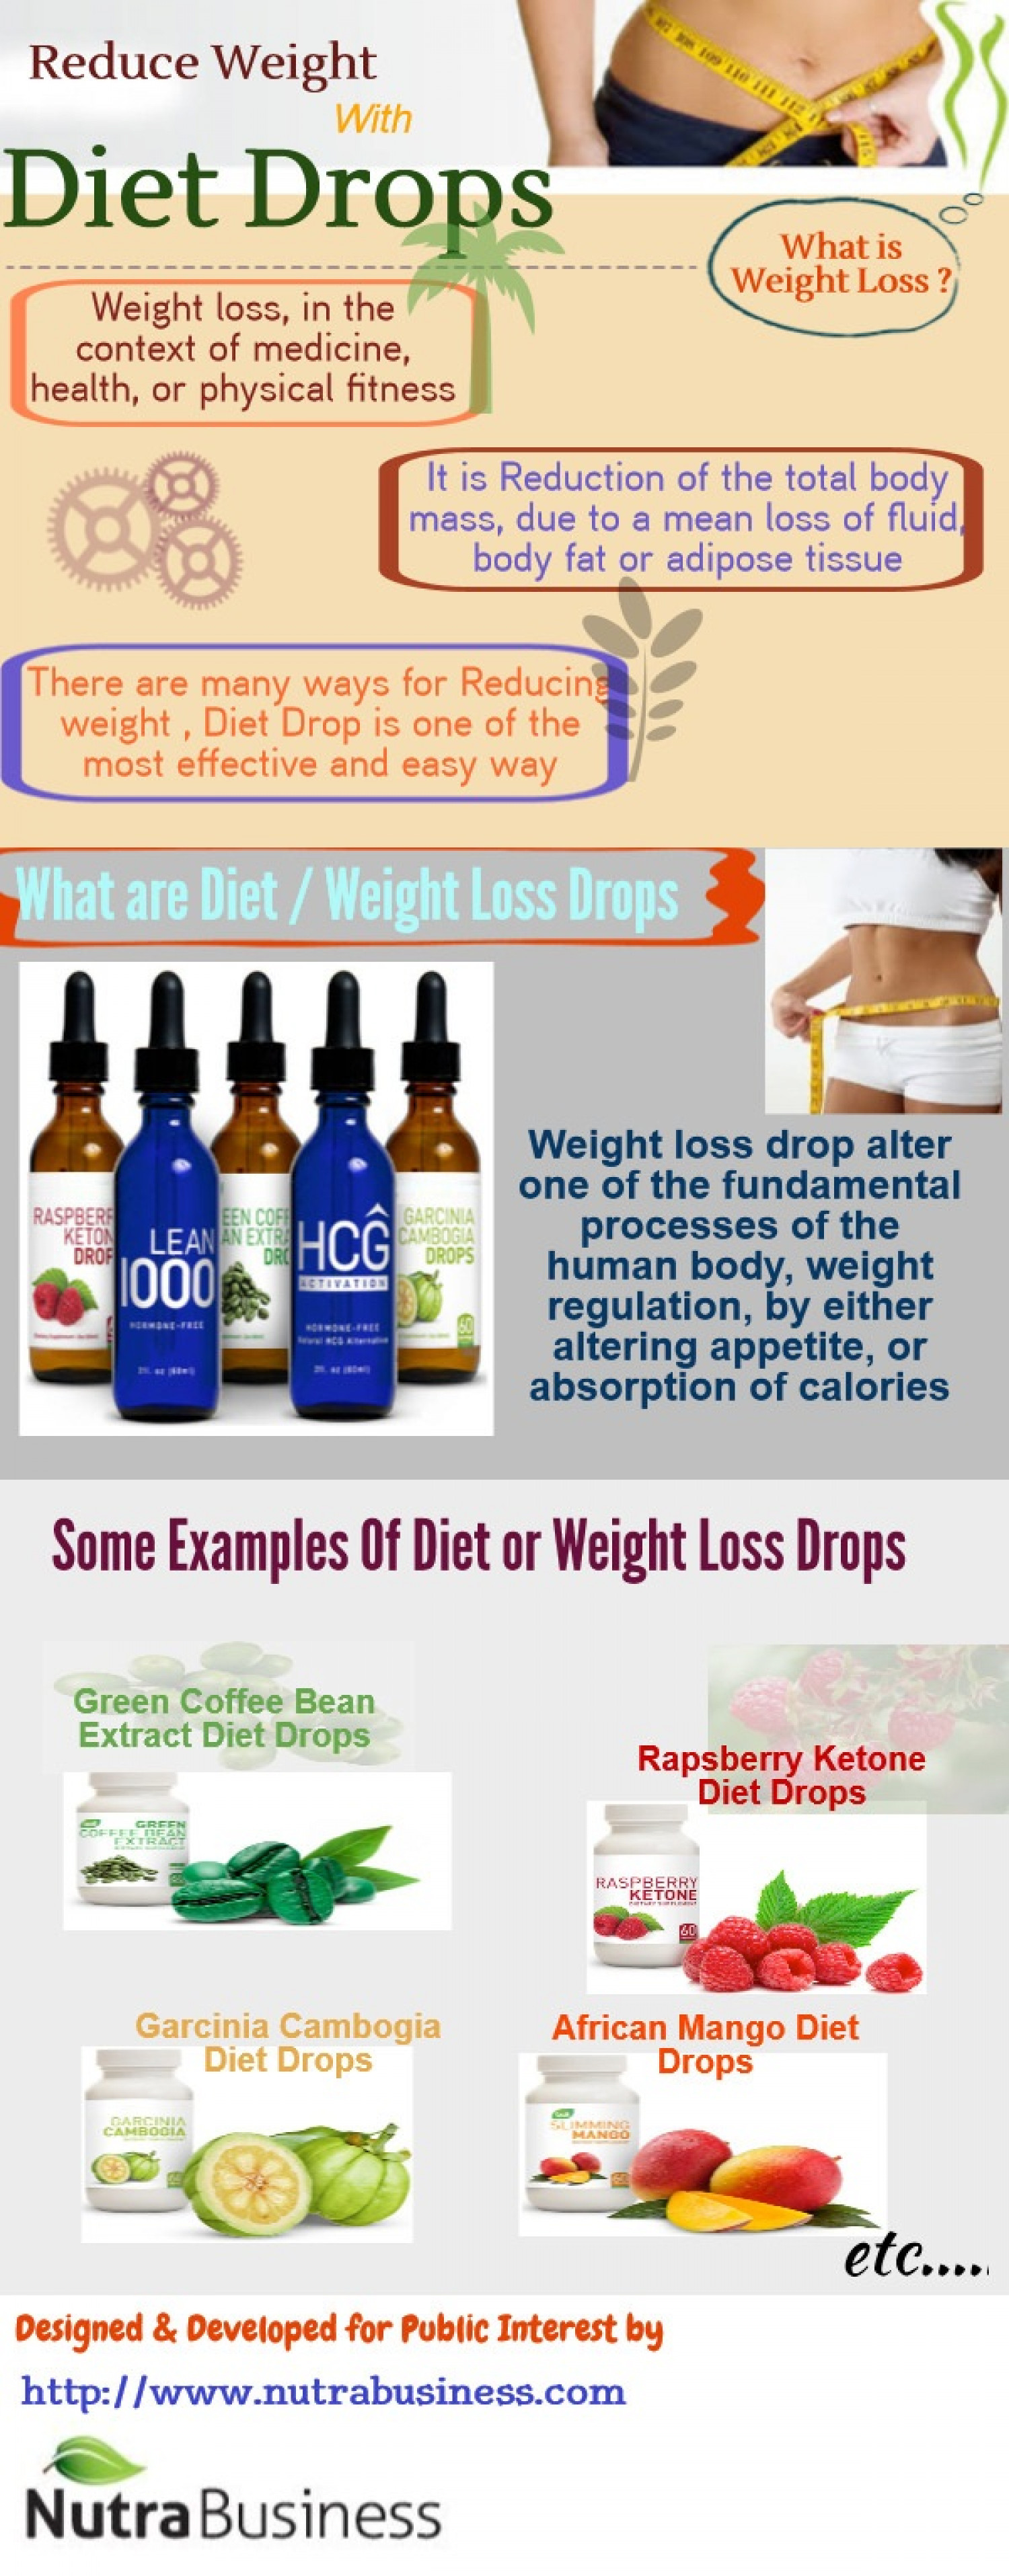 Reduce Weight with Diet Drop Infographic